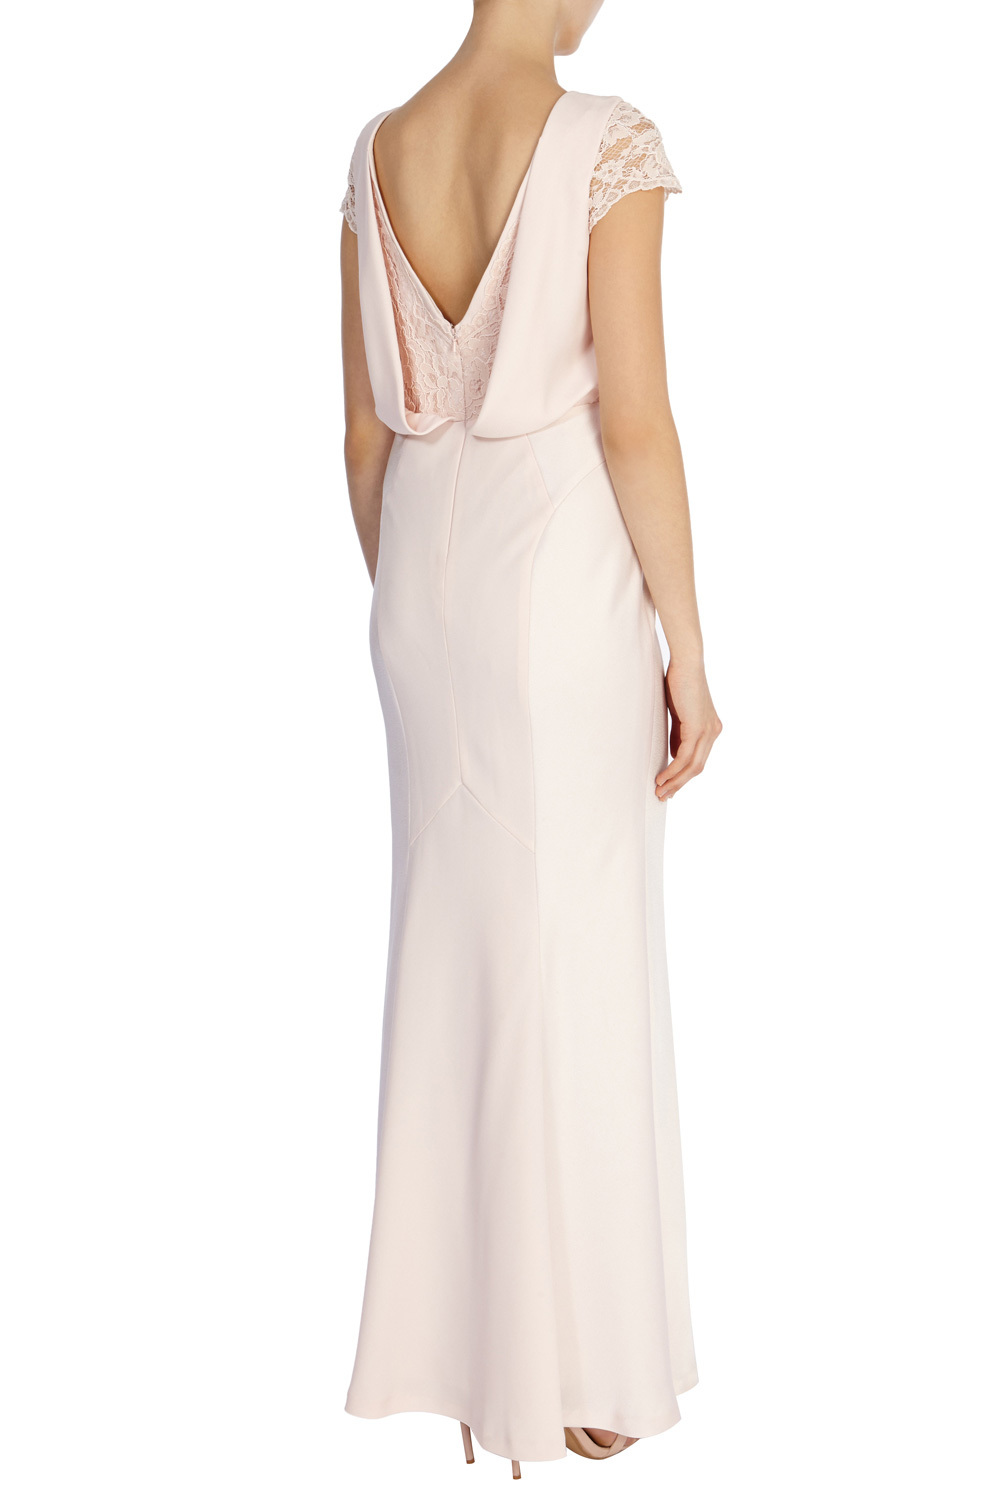 Adelina Maxi Dress - neckline: round neck; sleeve style: capped; pattern: plain; style: maxi dress; back detail: low cut/open back; predominant colour: blush; length: floor length; fit: body skimming; fibres: polyester/polyamide - 100%; occasions: occasion; sleeve length: sleeveless; pattern type: fabric; texture group: other - light to midweight; embellishment: beading; season: a/w 2015